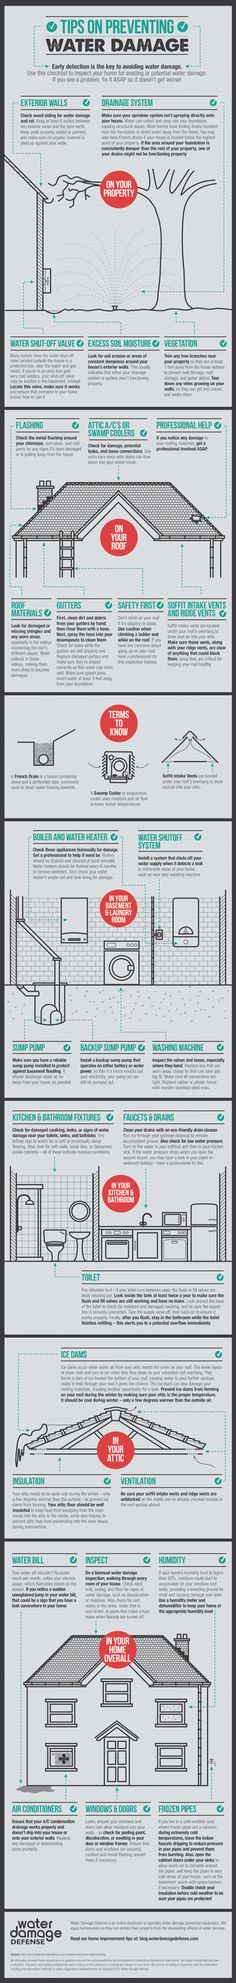 Early detection is the key to avoiding many types of home water damage.